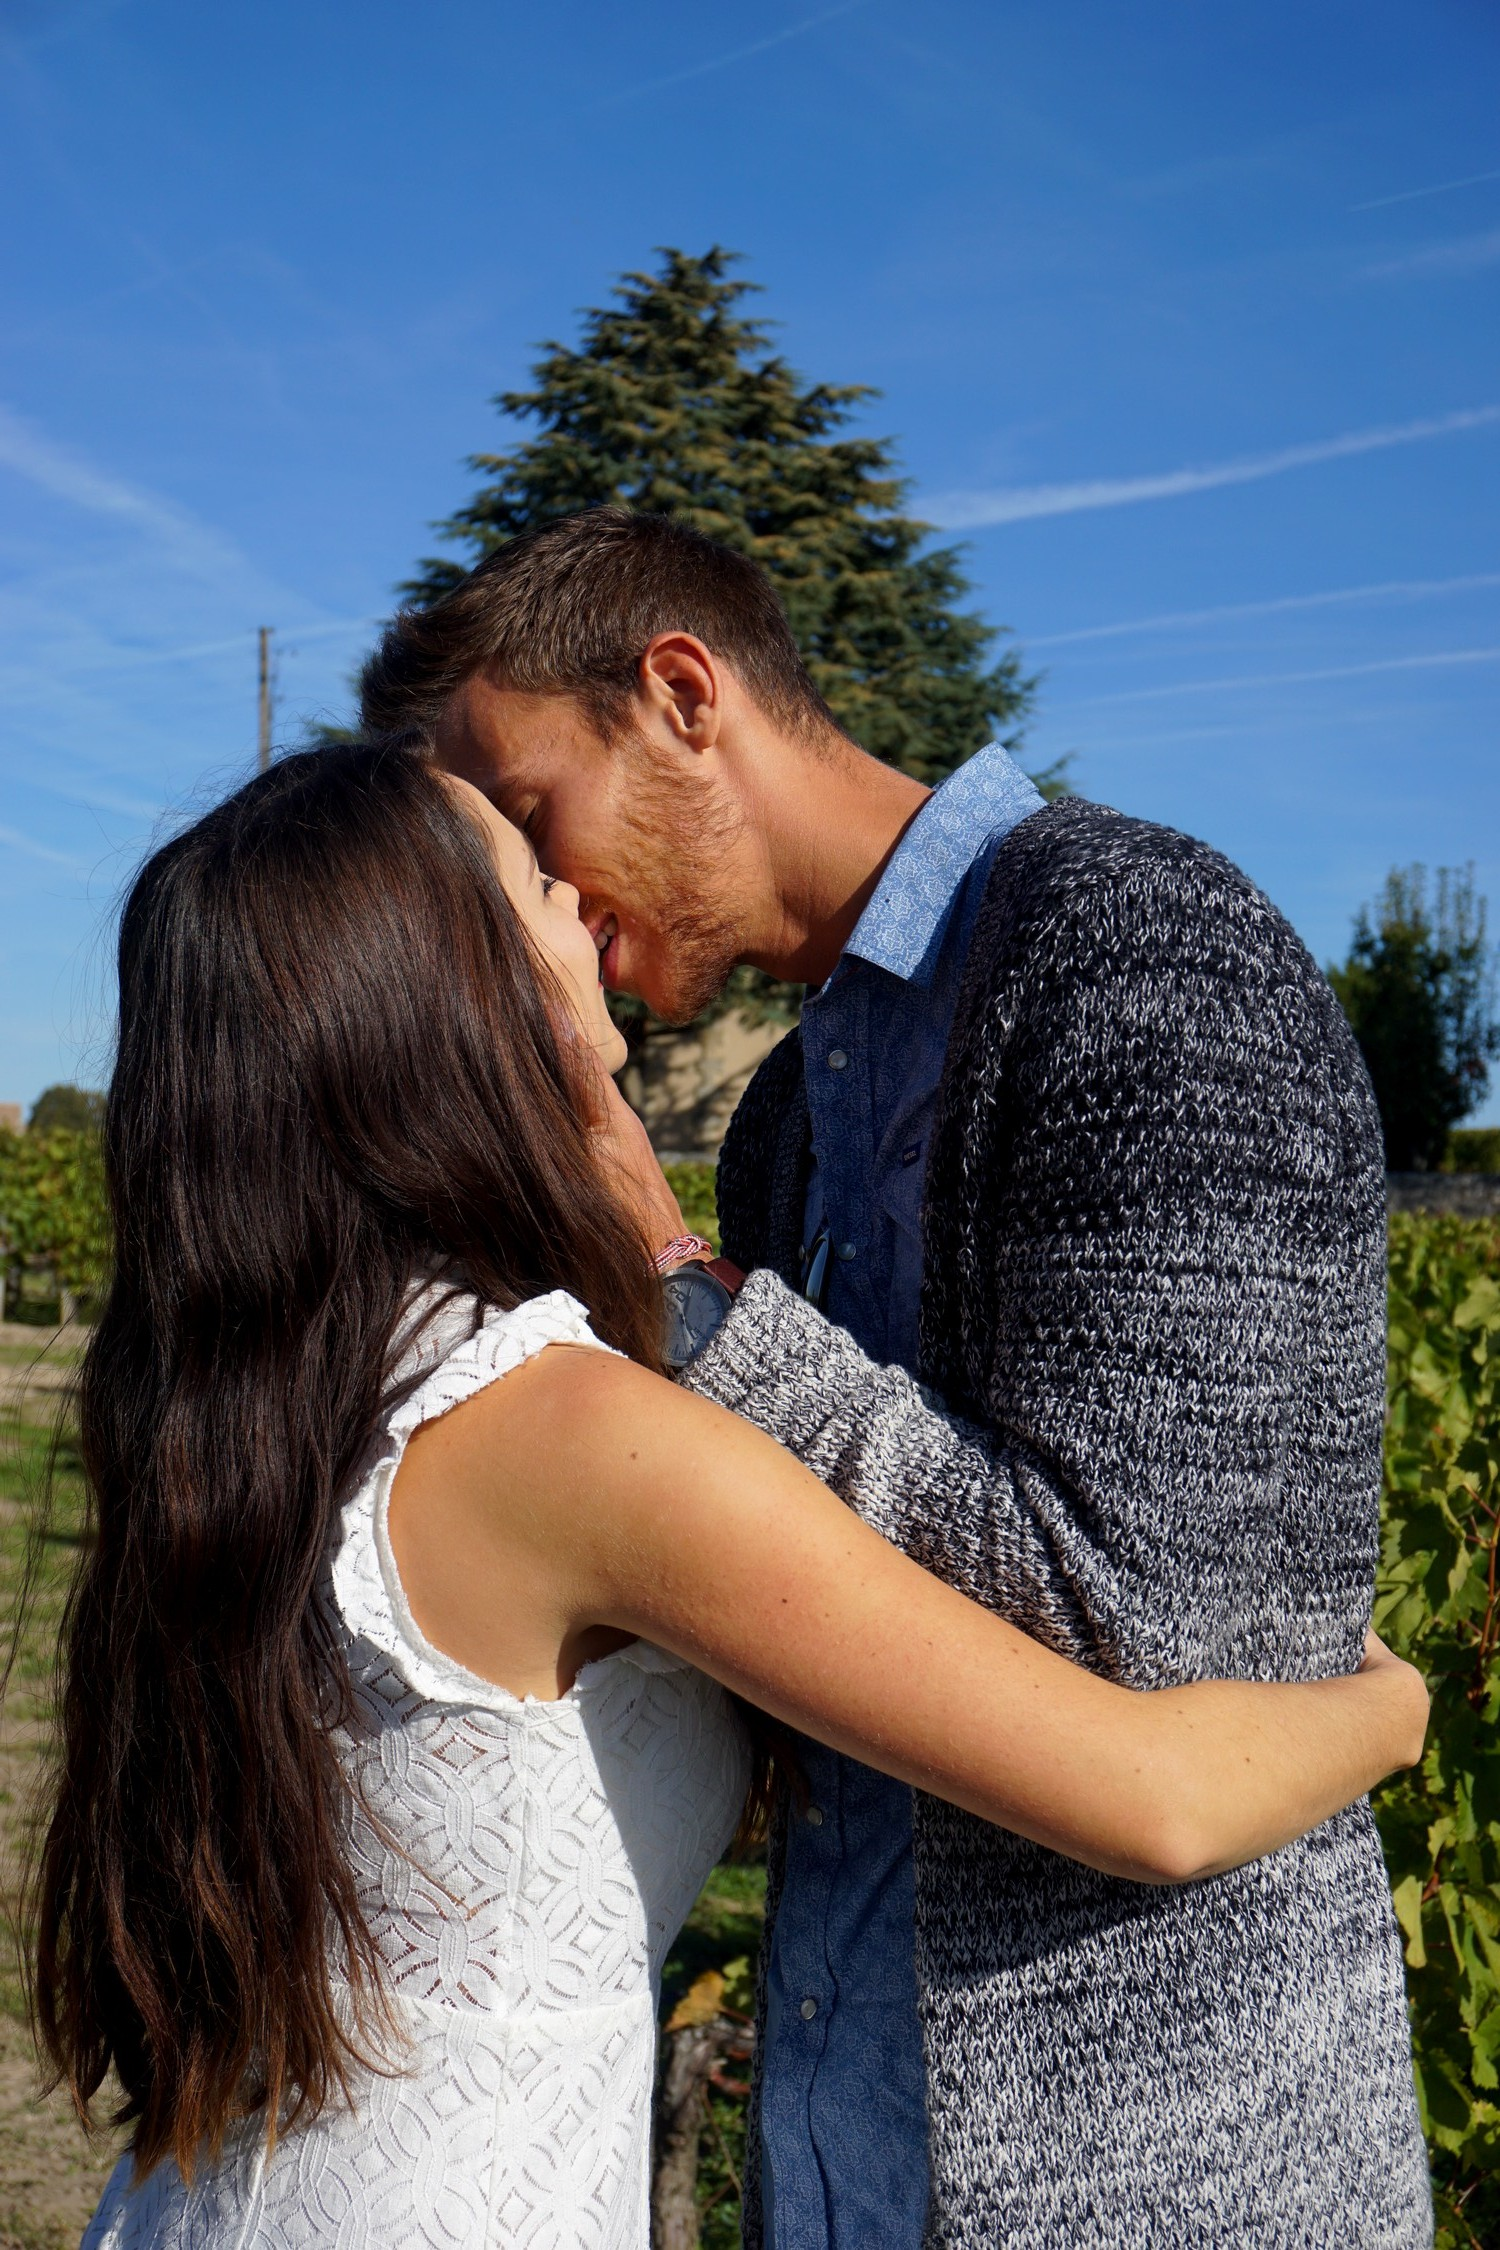 1-an-du-blog-en-couple-bordeaux-corse-blog-voyage-lifestyle-mode-look-shooting-photo-couple-vigne-16